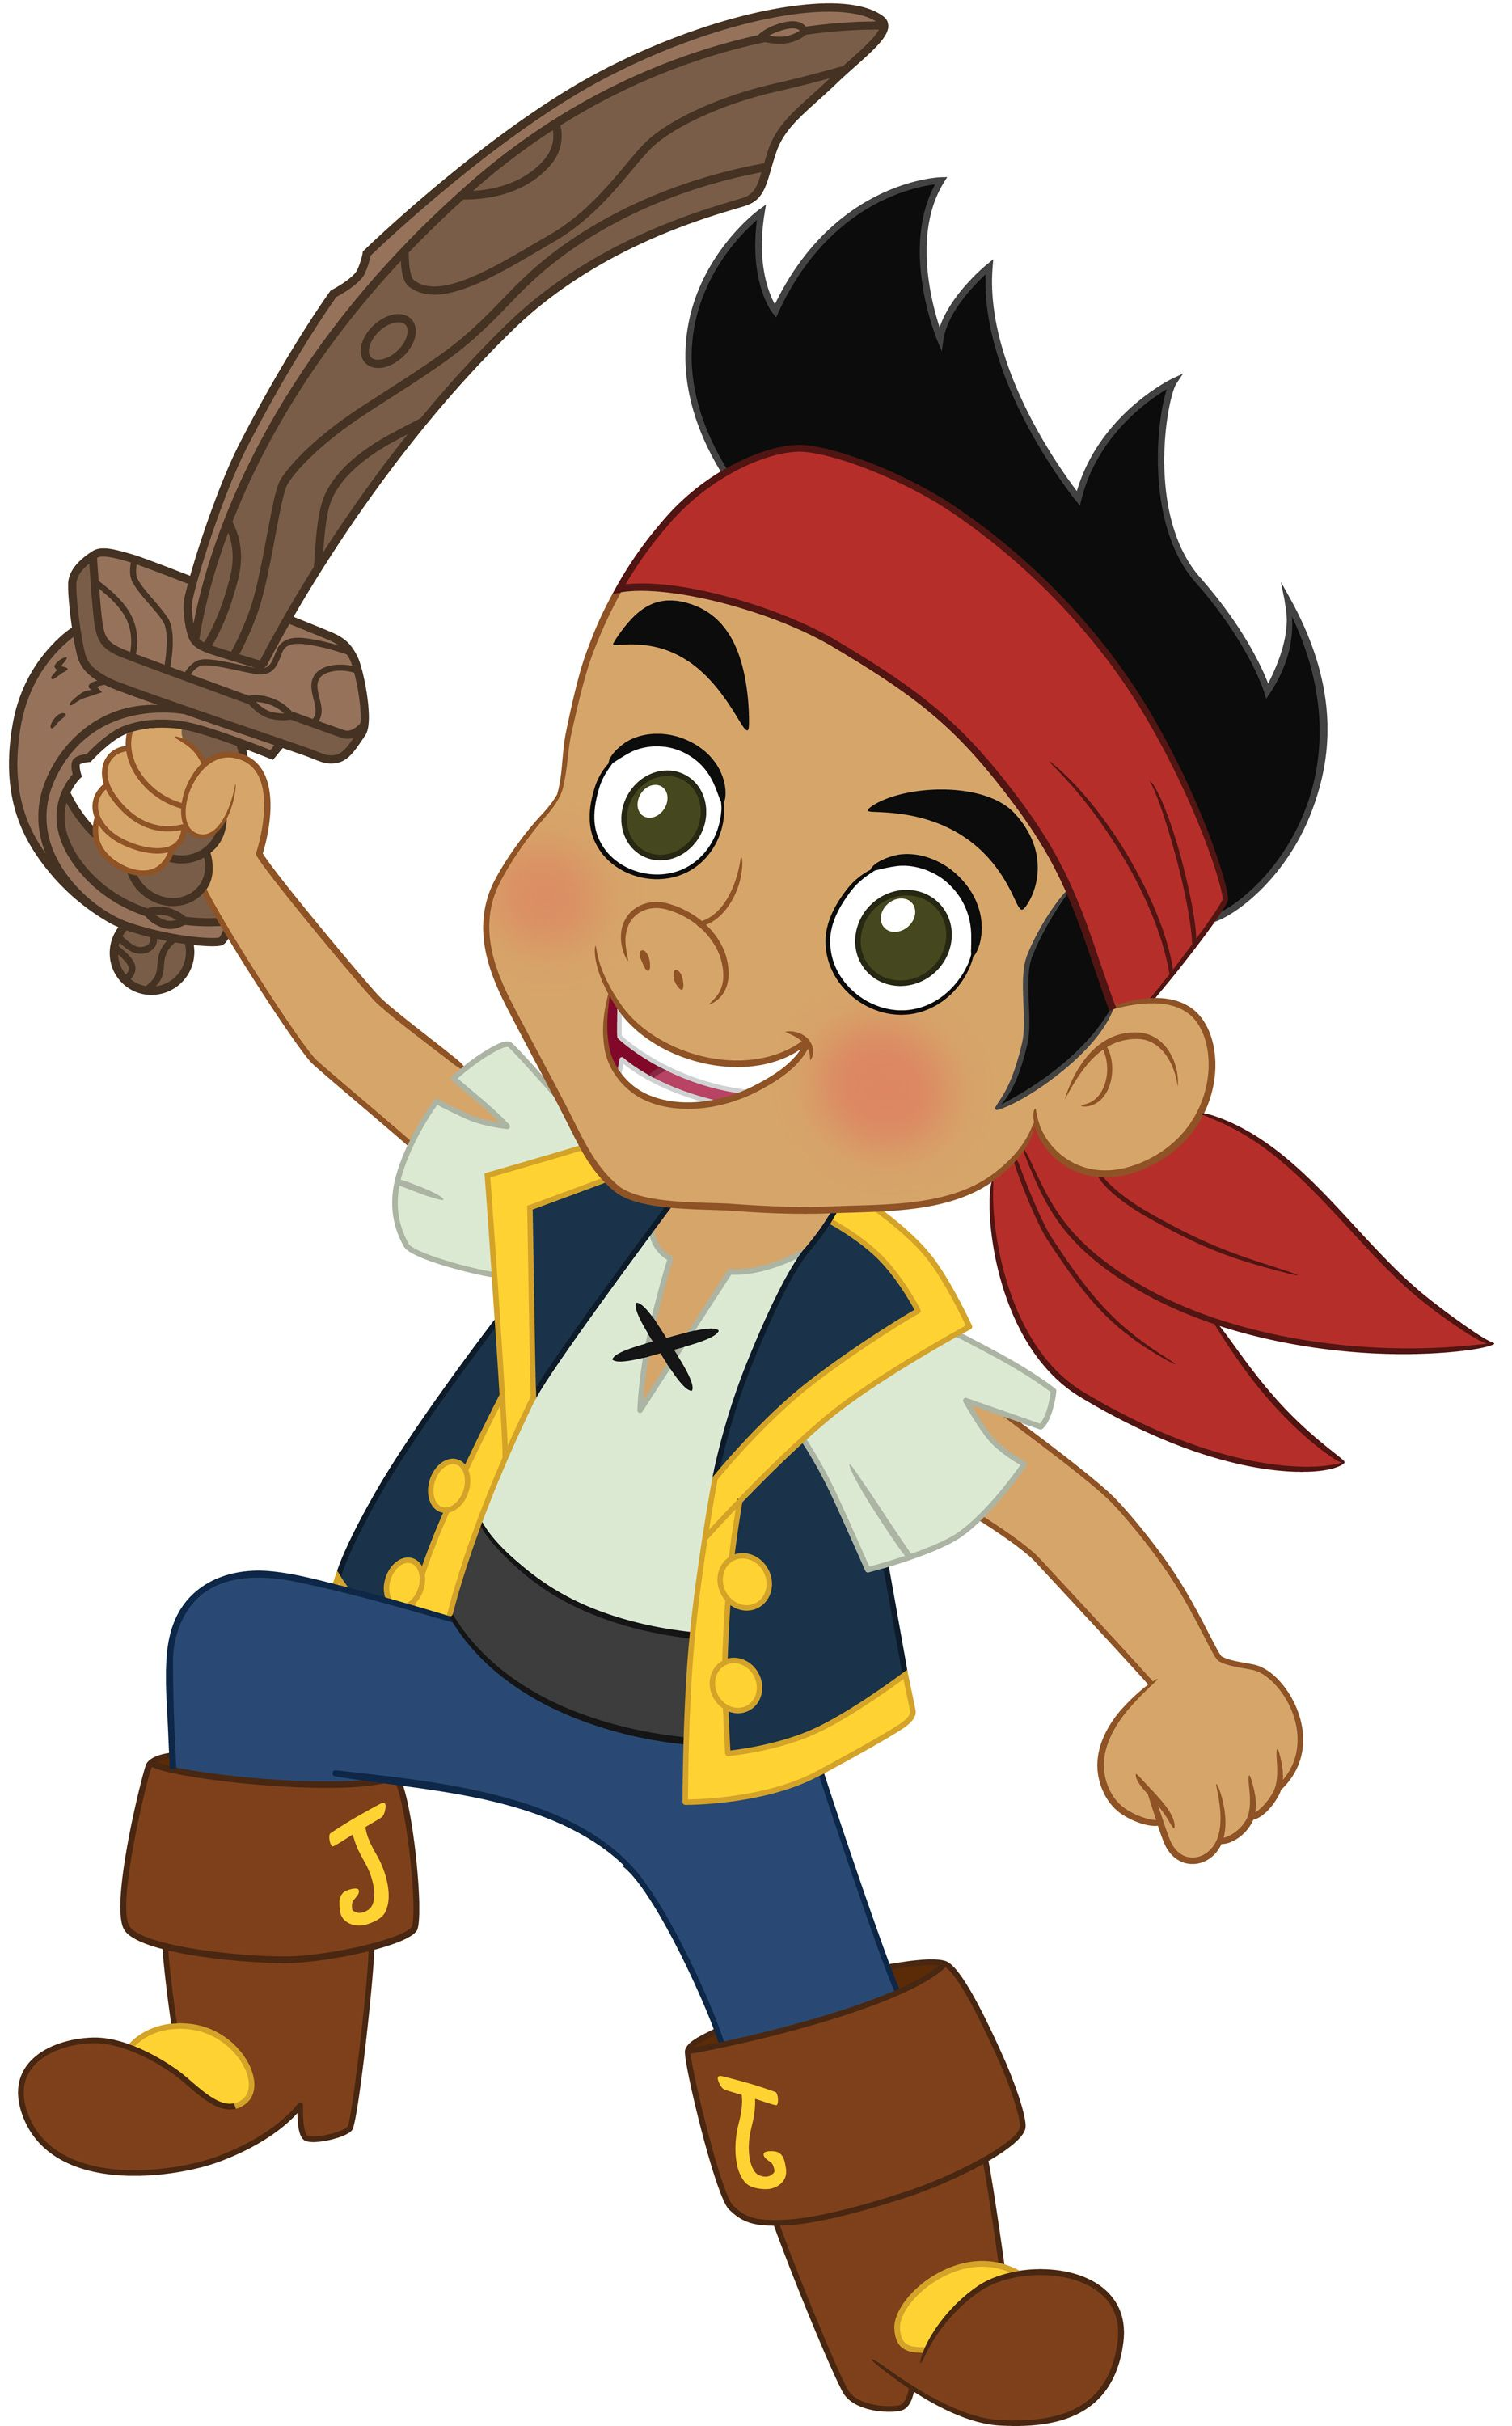 Pirate clipart, Pirate Transparent FREE for download on.